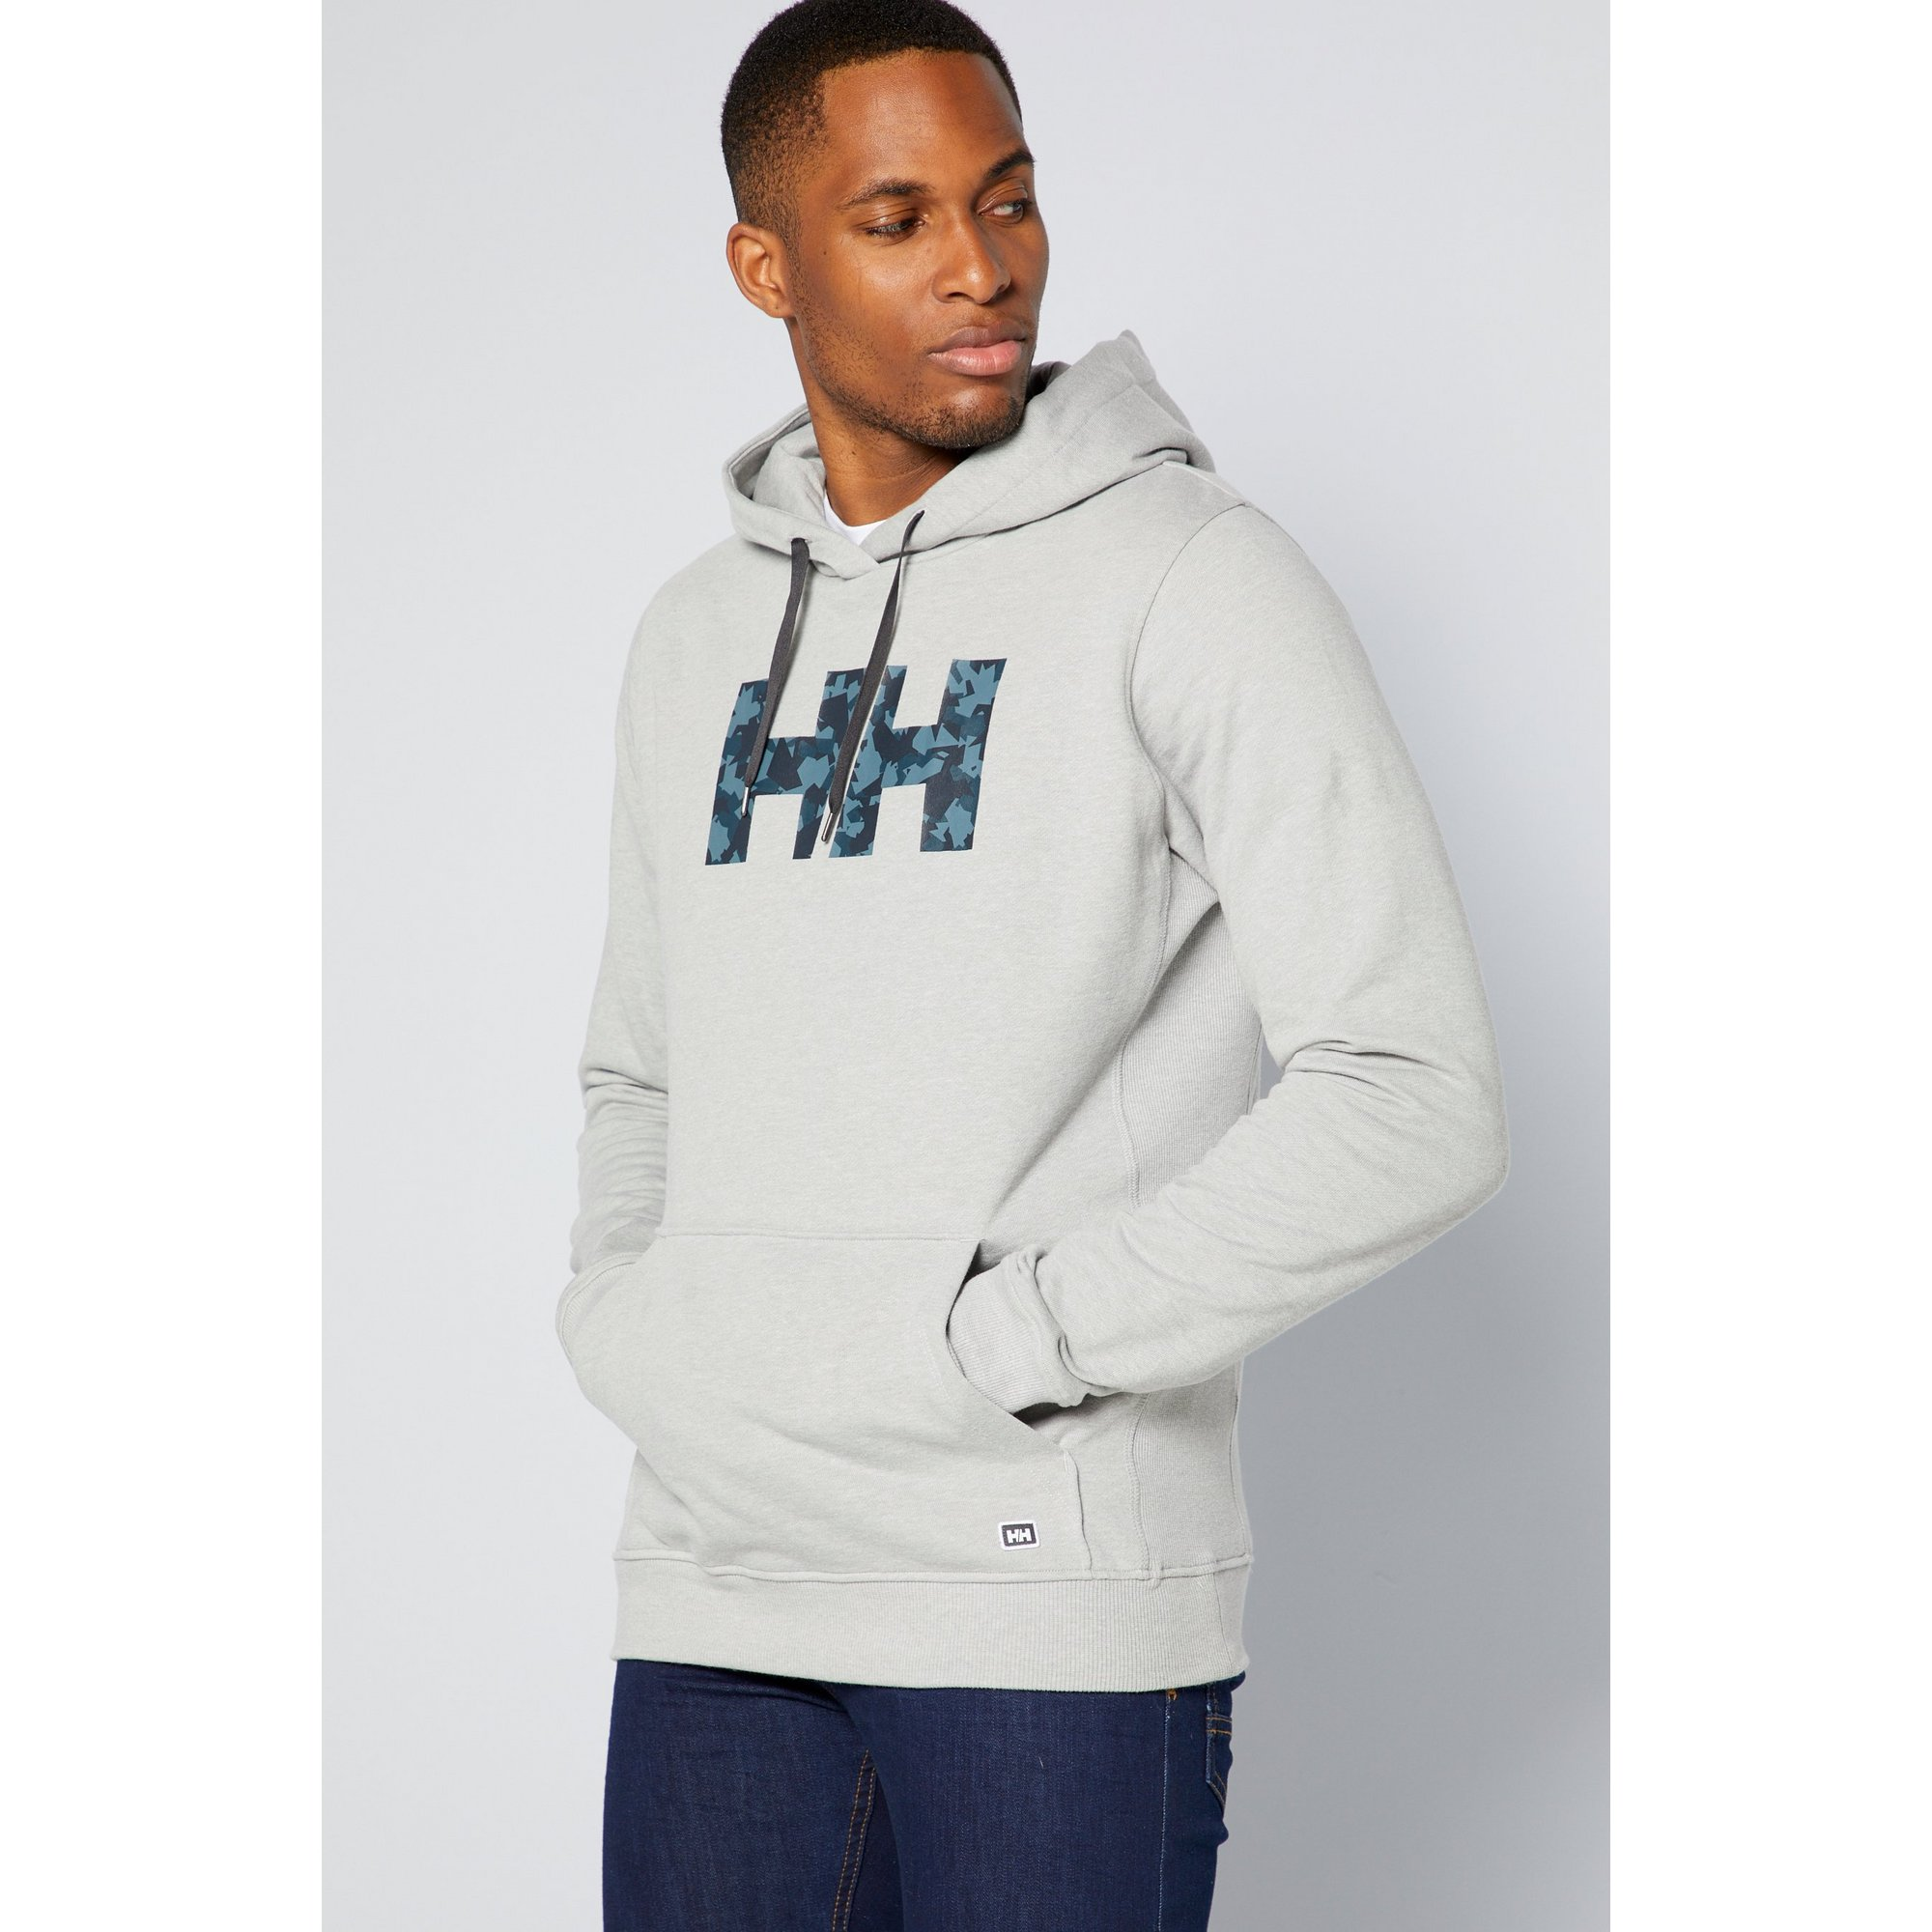 Image of Helly Hansen Over The Head Hoody